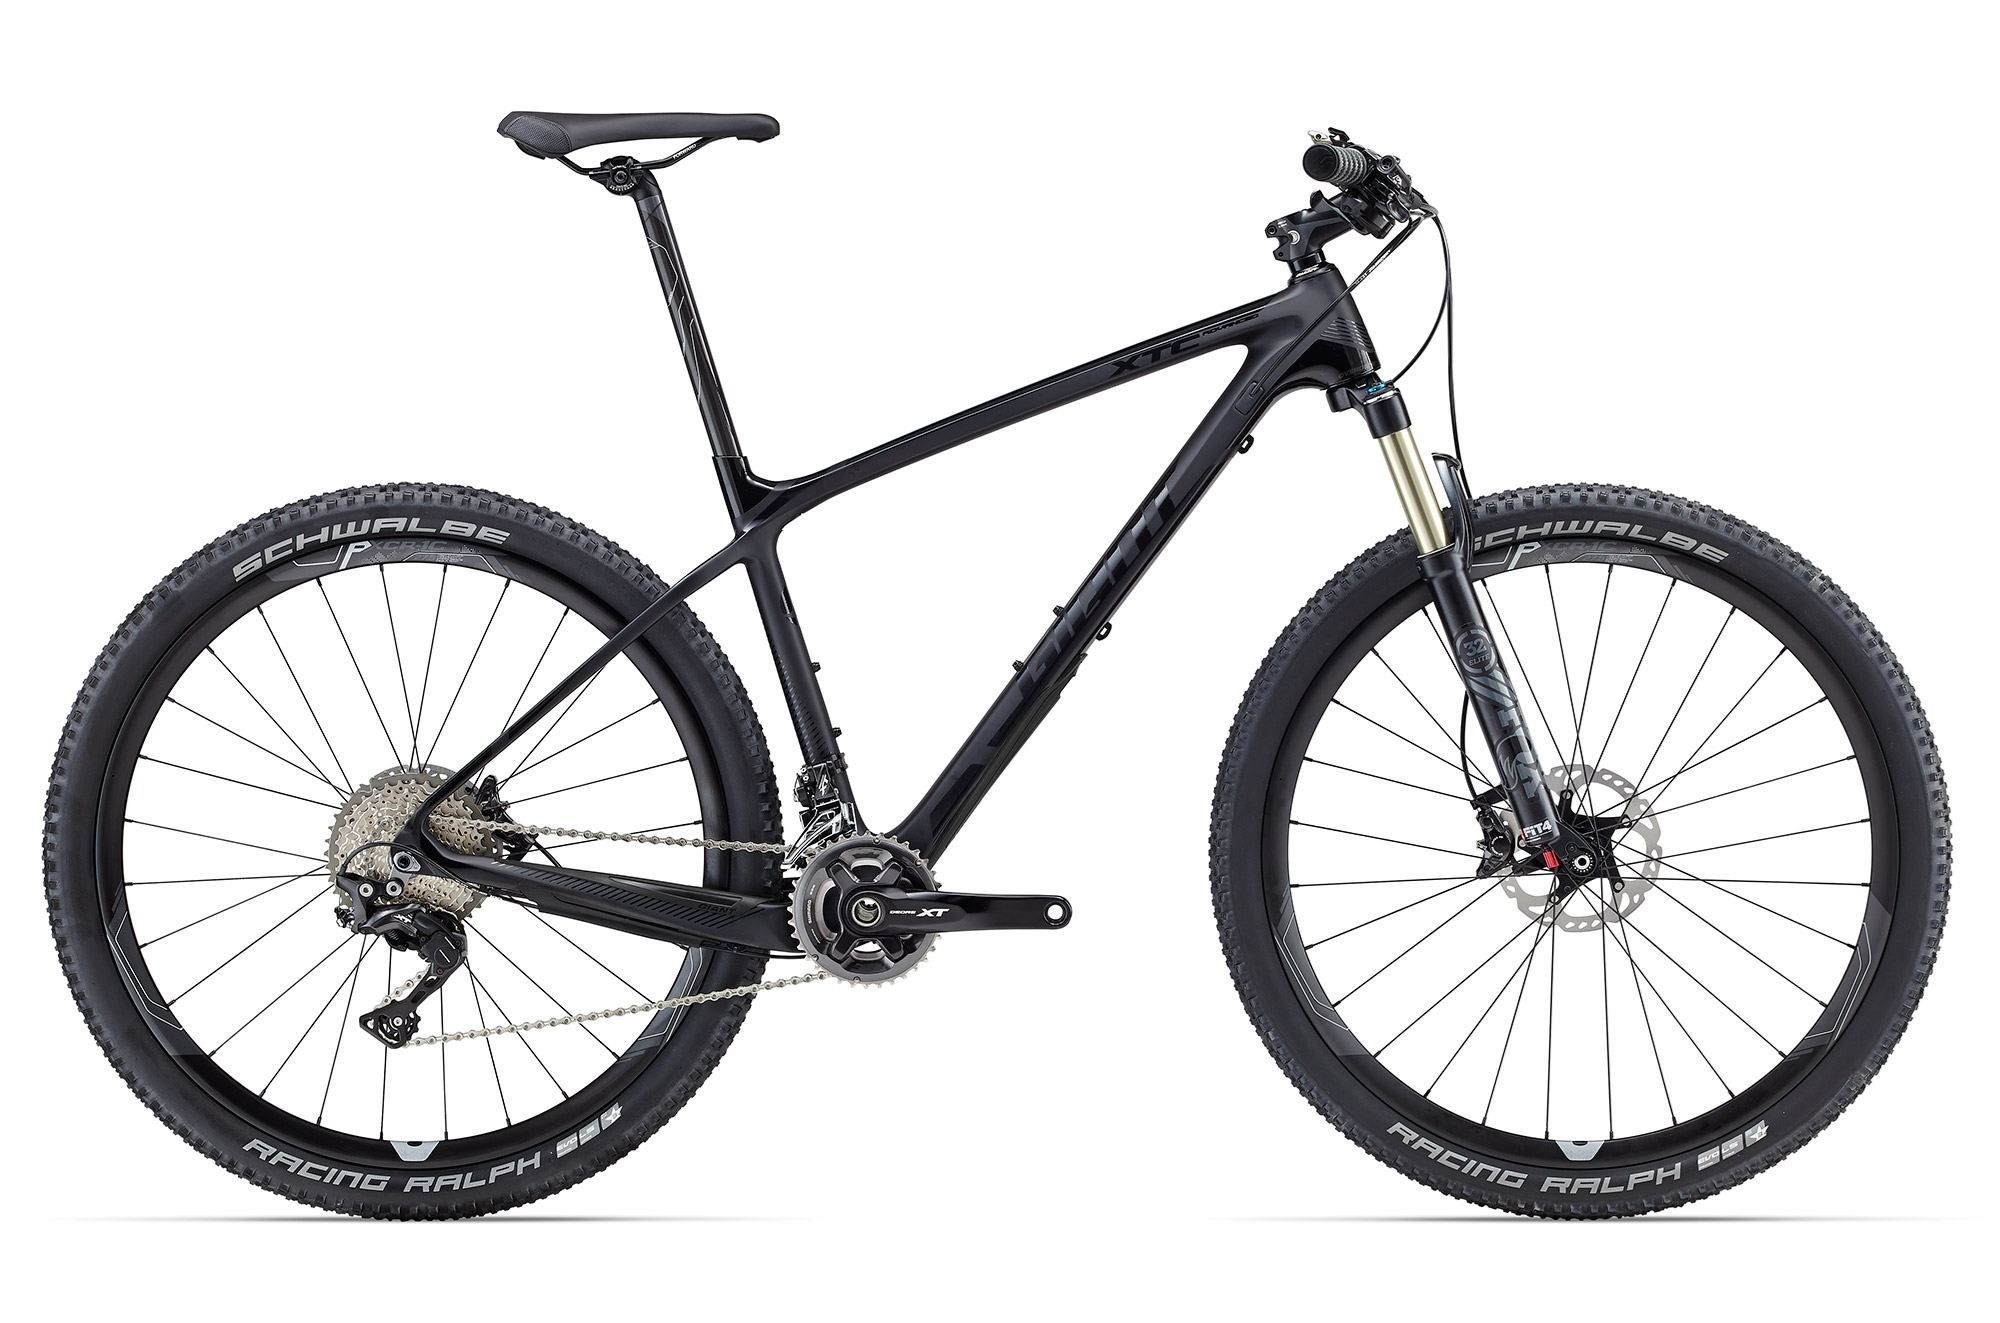 Велосипед Giant XtC Advanced 27.5 1 2016 велосипед giant xtc advanced 27 5 2 2016